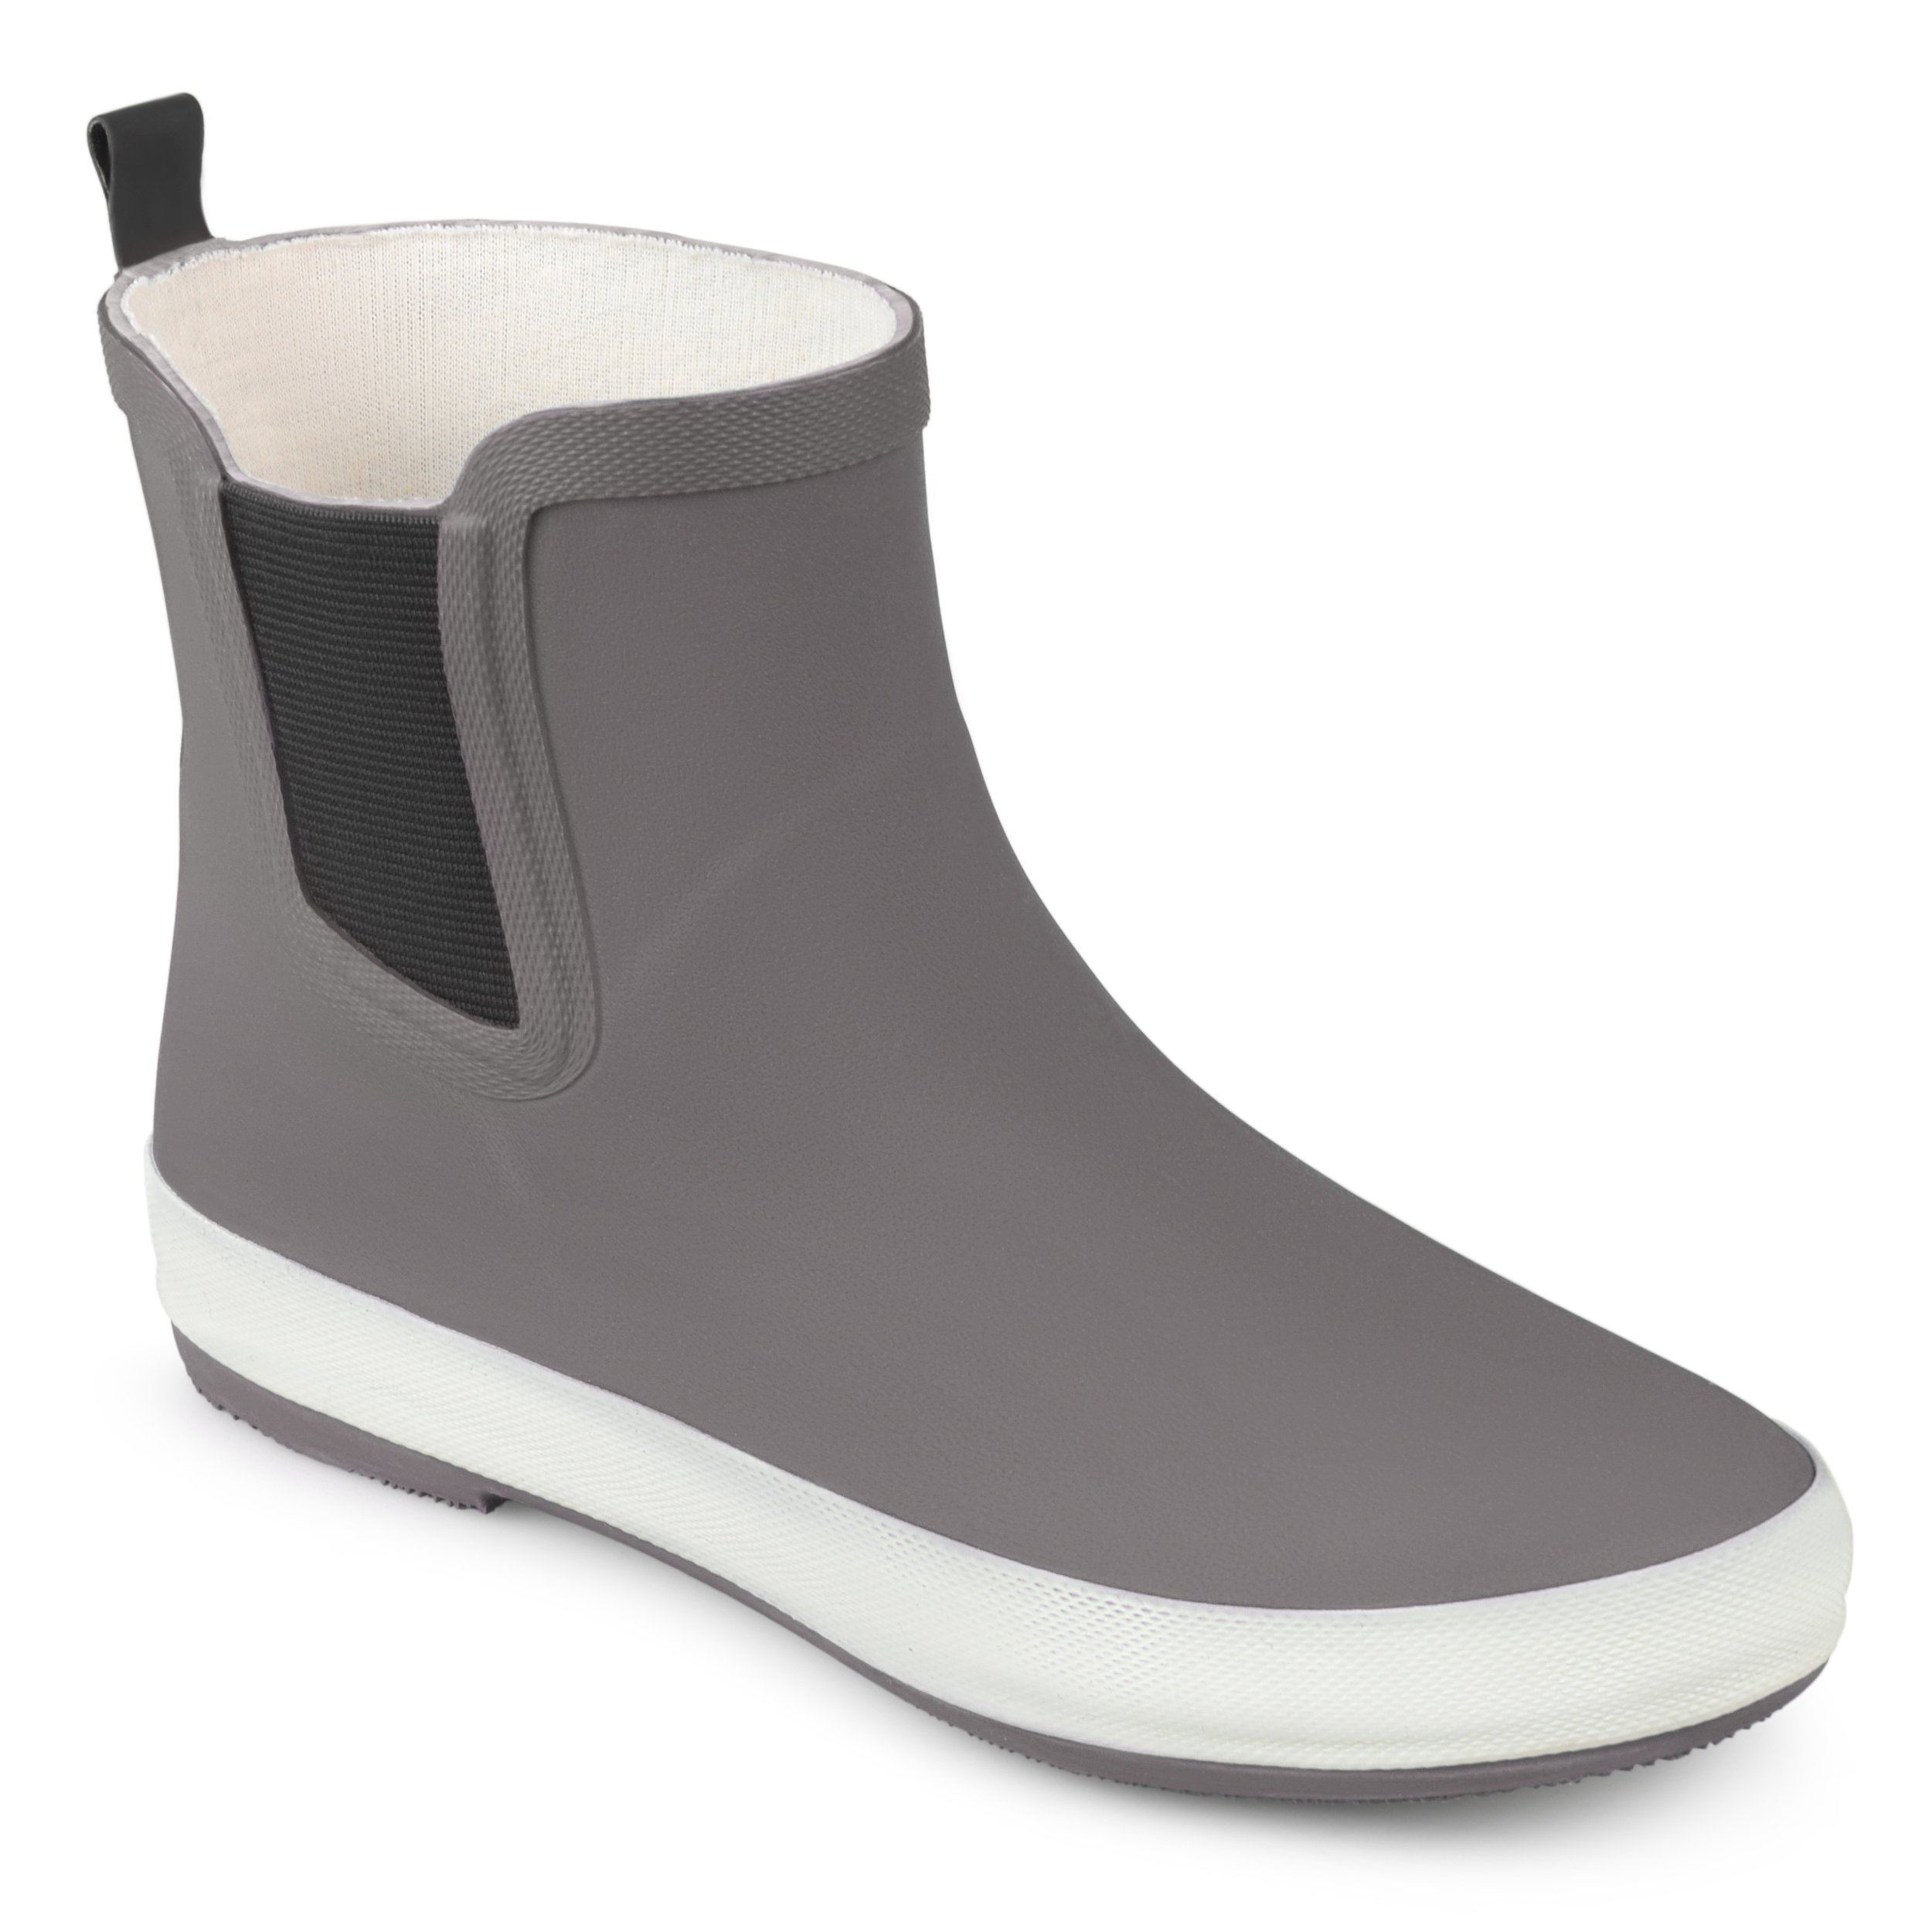 Brinley Co. Womens Samar Rubber Sporty Solid Color Rainboots Grey, 8.5 Regular US